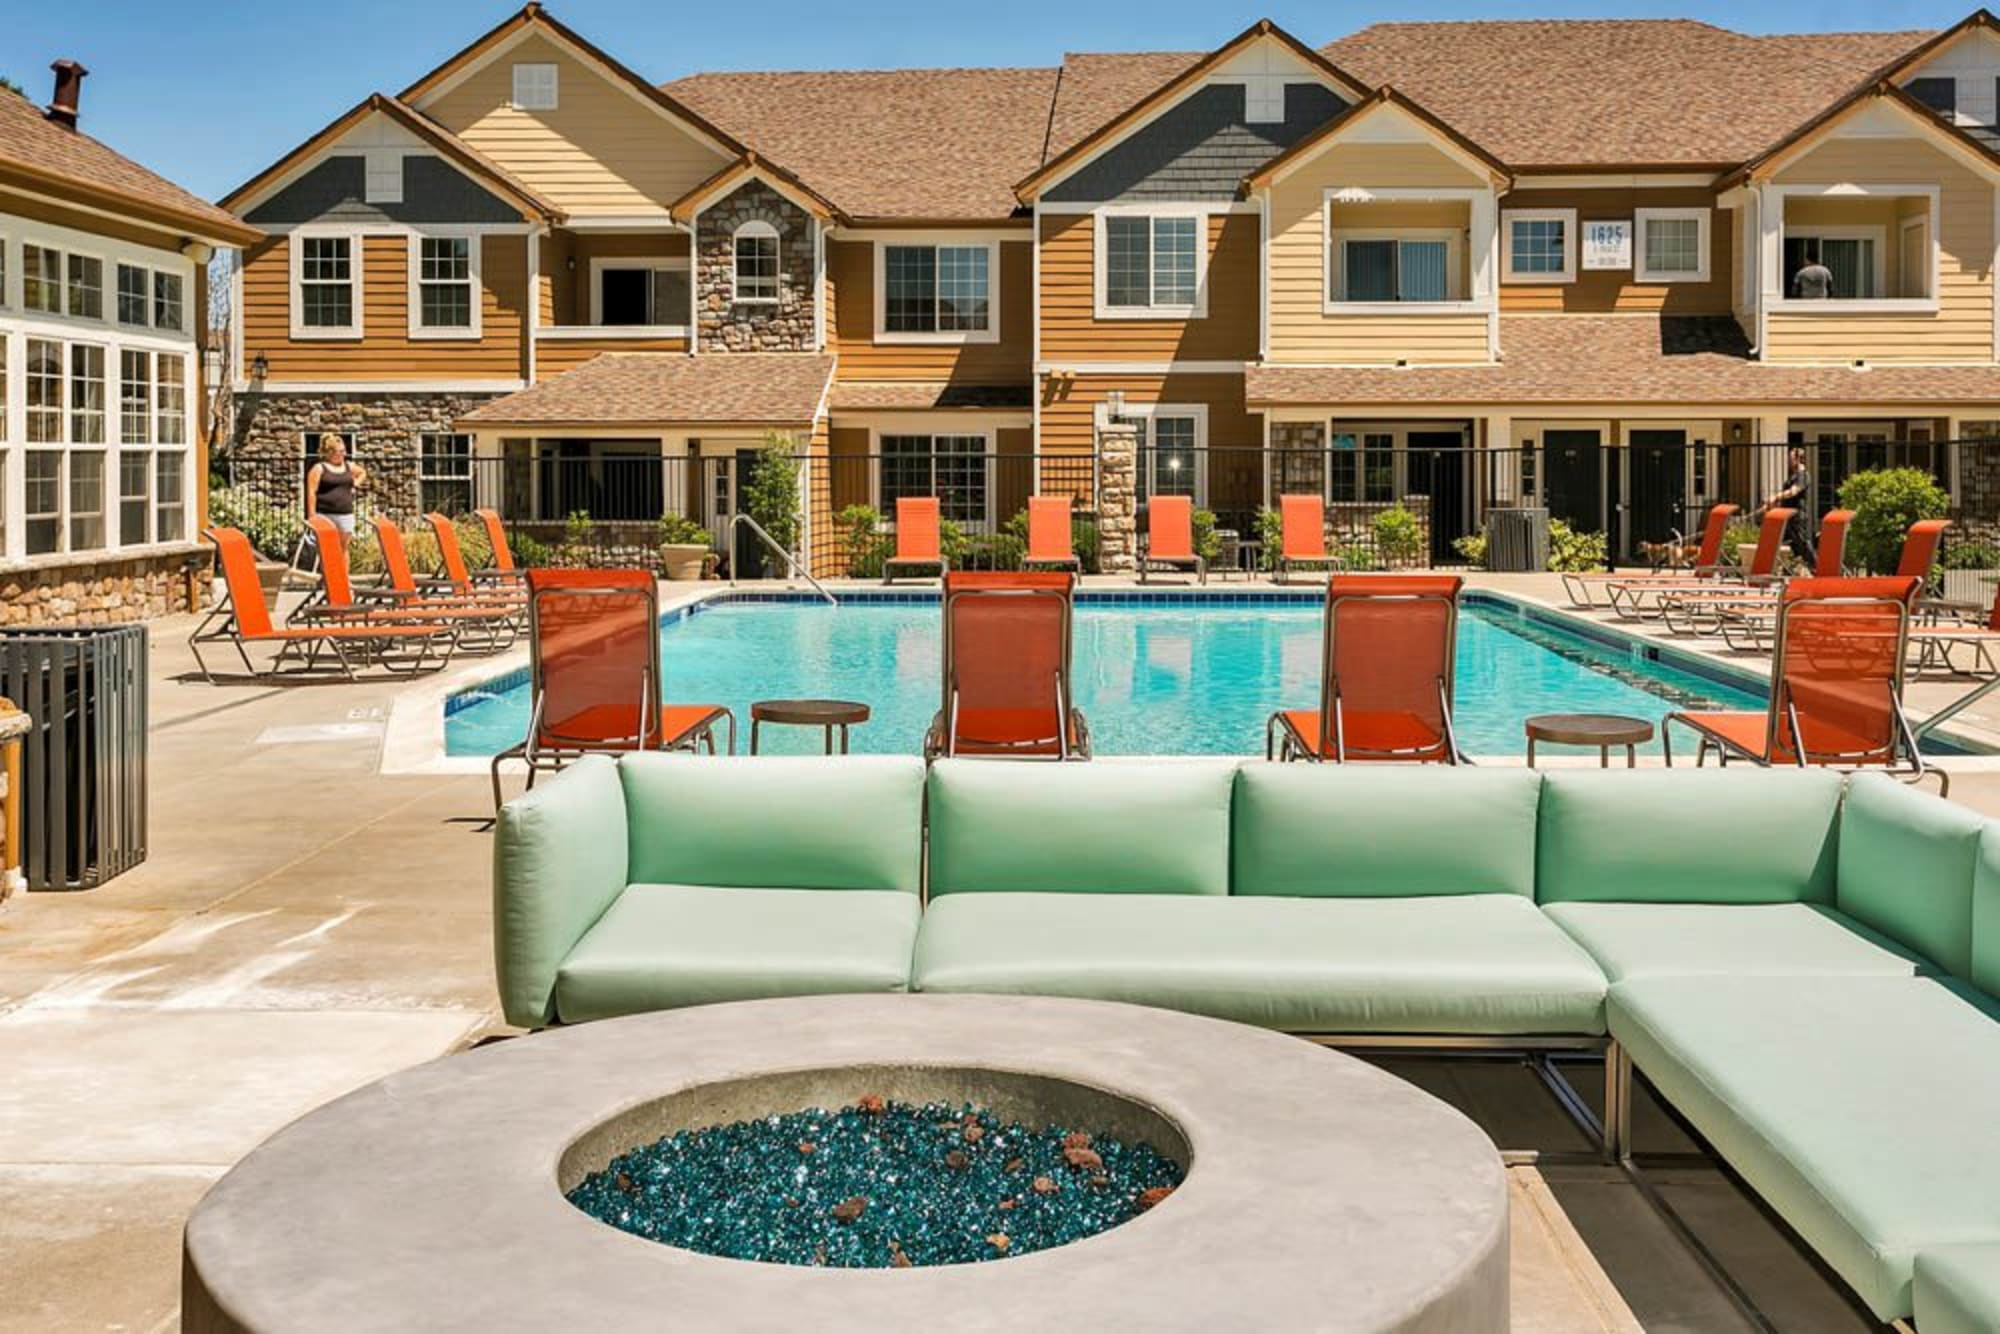 A fire pit surrounded by large chairs, poolside at Crestone Apartments in Aurora, Colorado